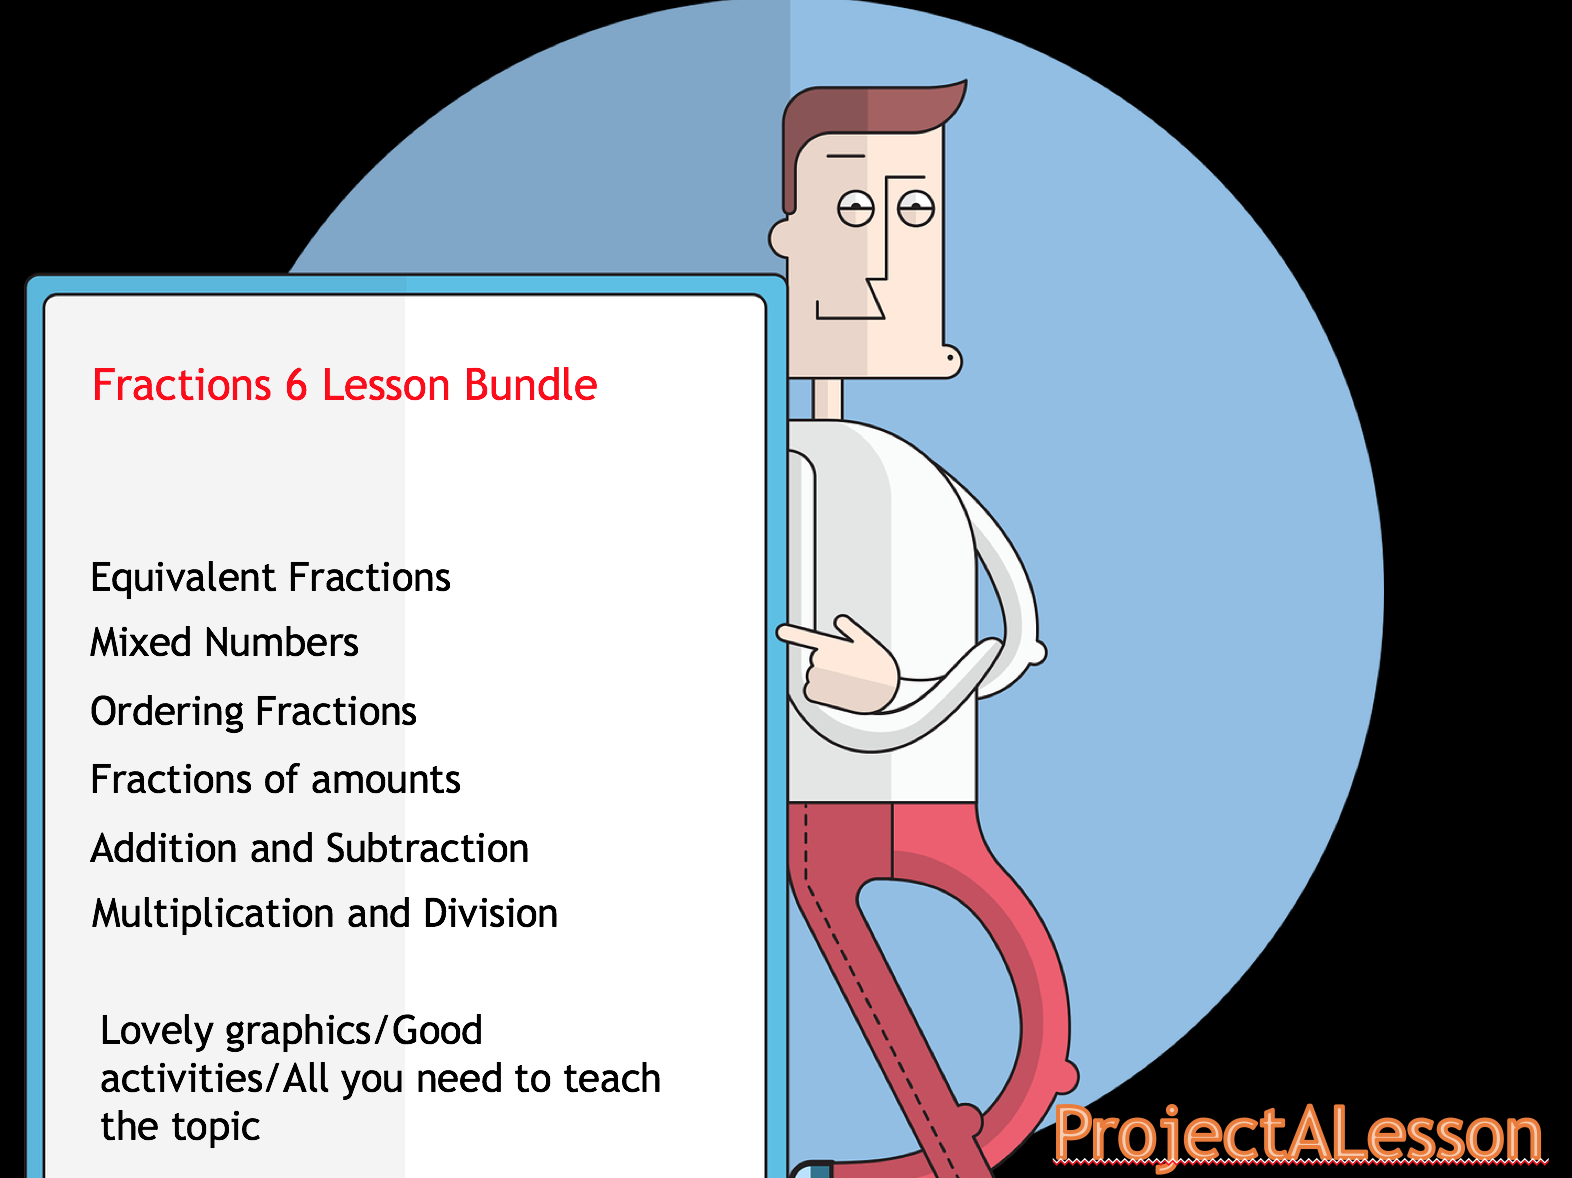 ProjectALesson Bundle: Fractions